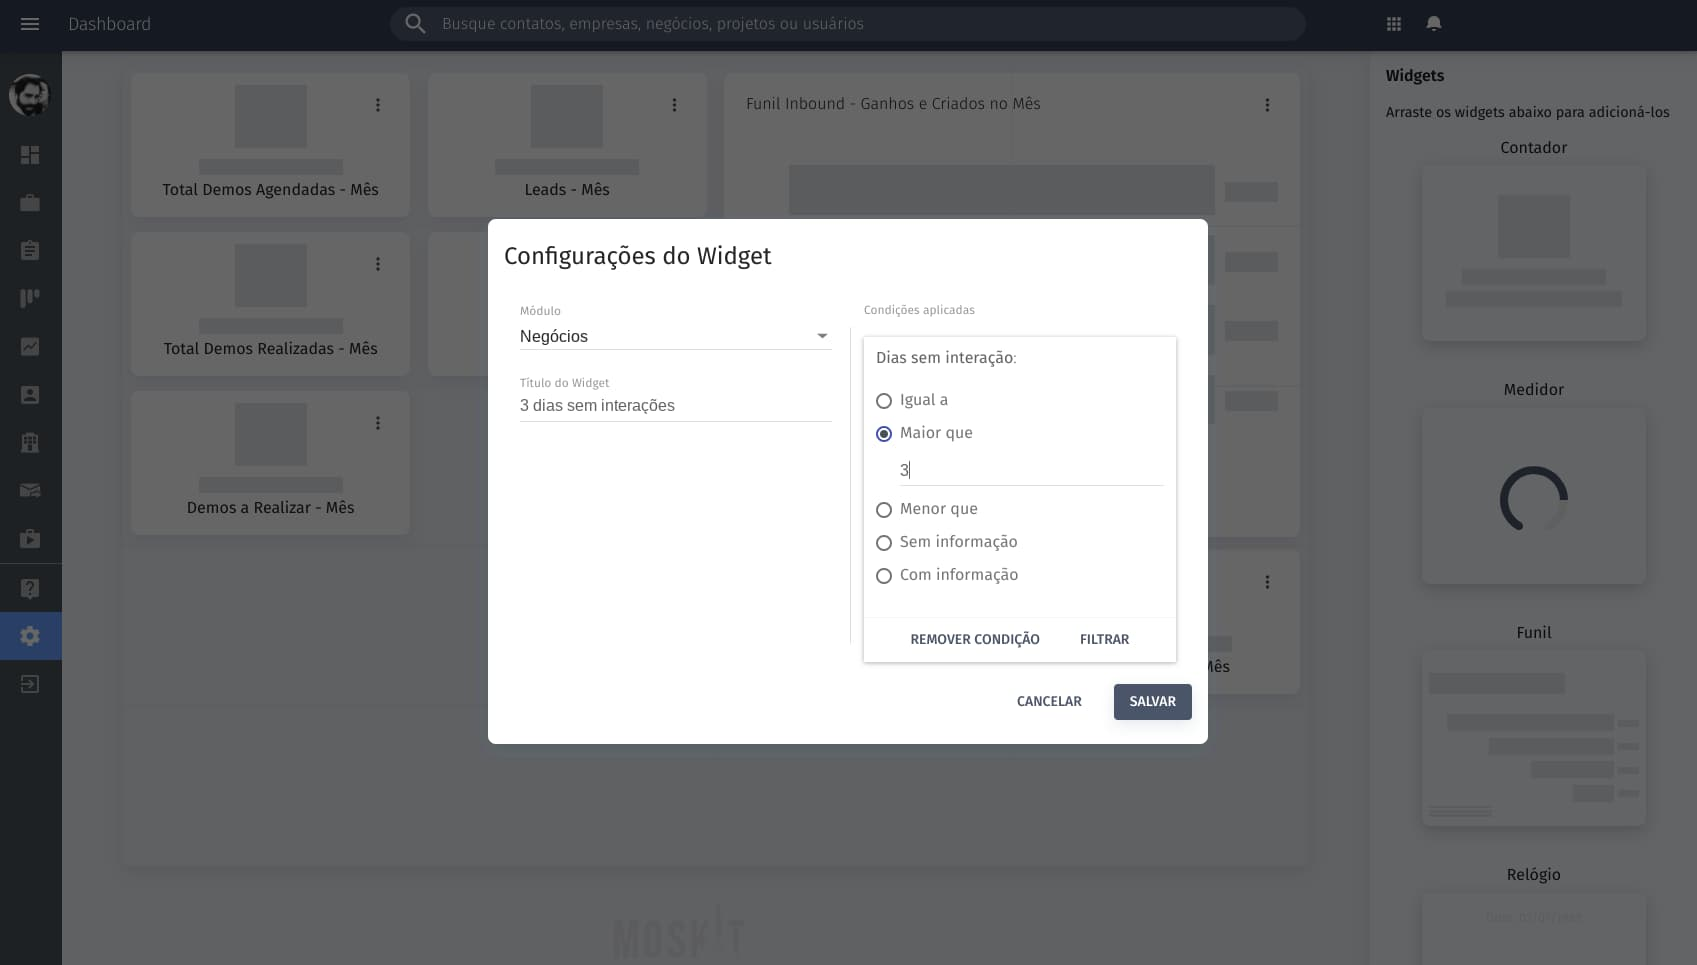 como configurar widget dentro do CRM